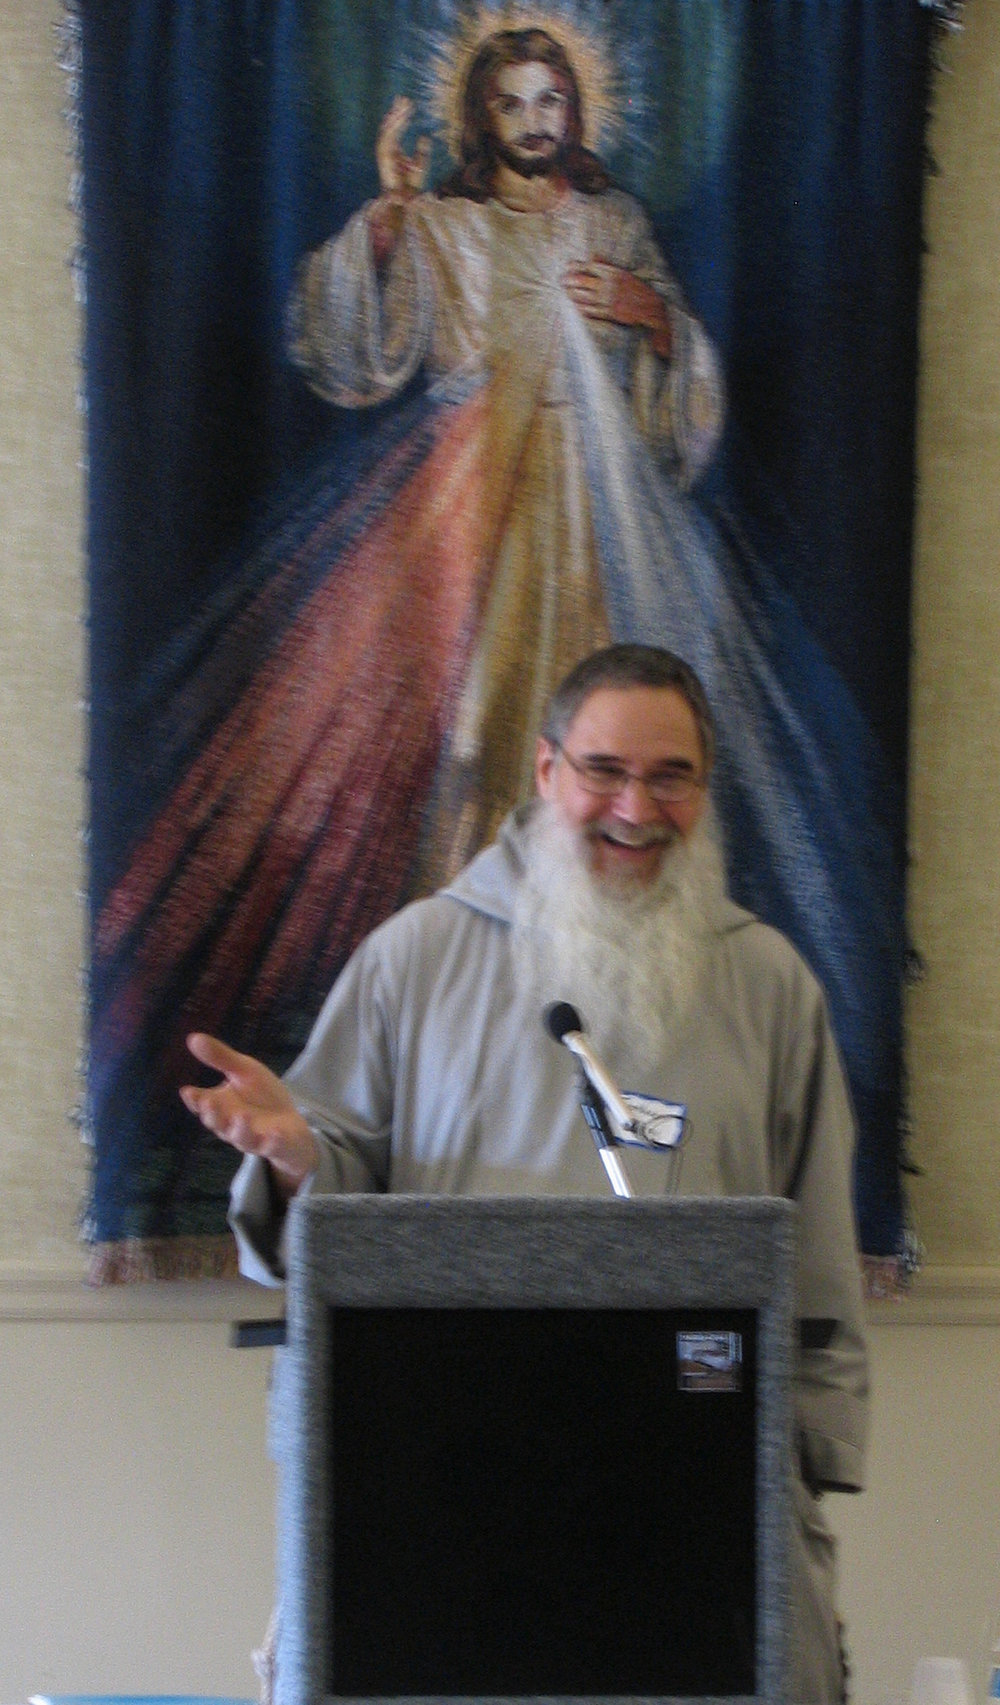 Father Terrence Messer, CFR, at the One Day Retreat on Feb. 28, 2018.